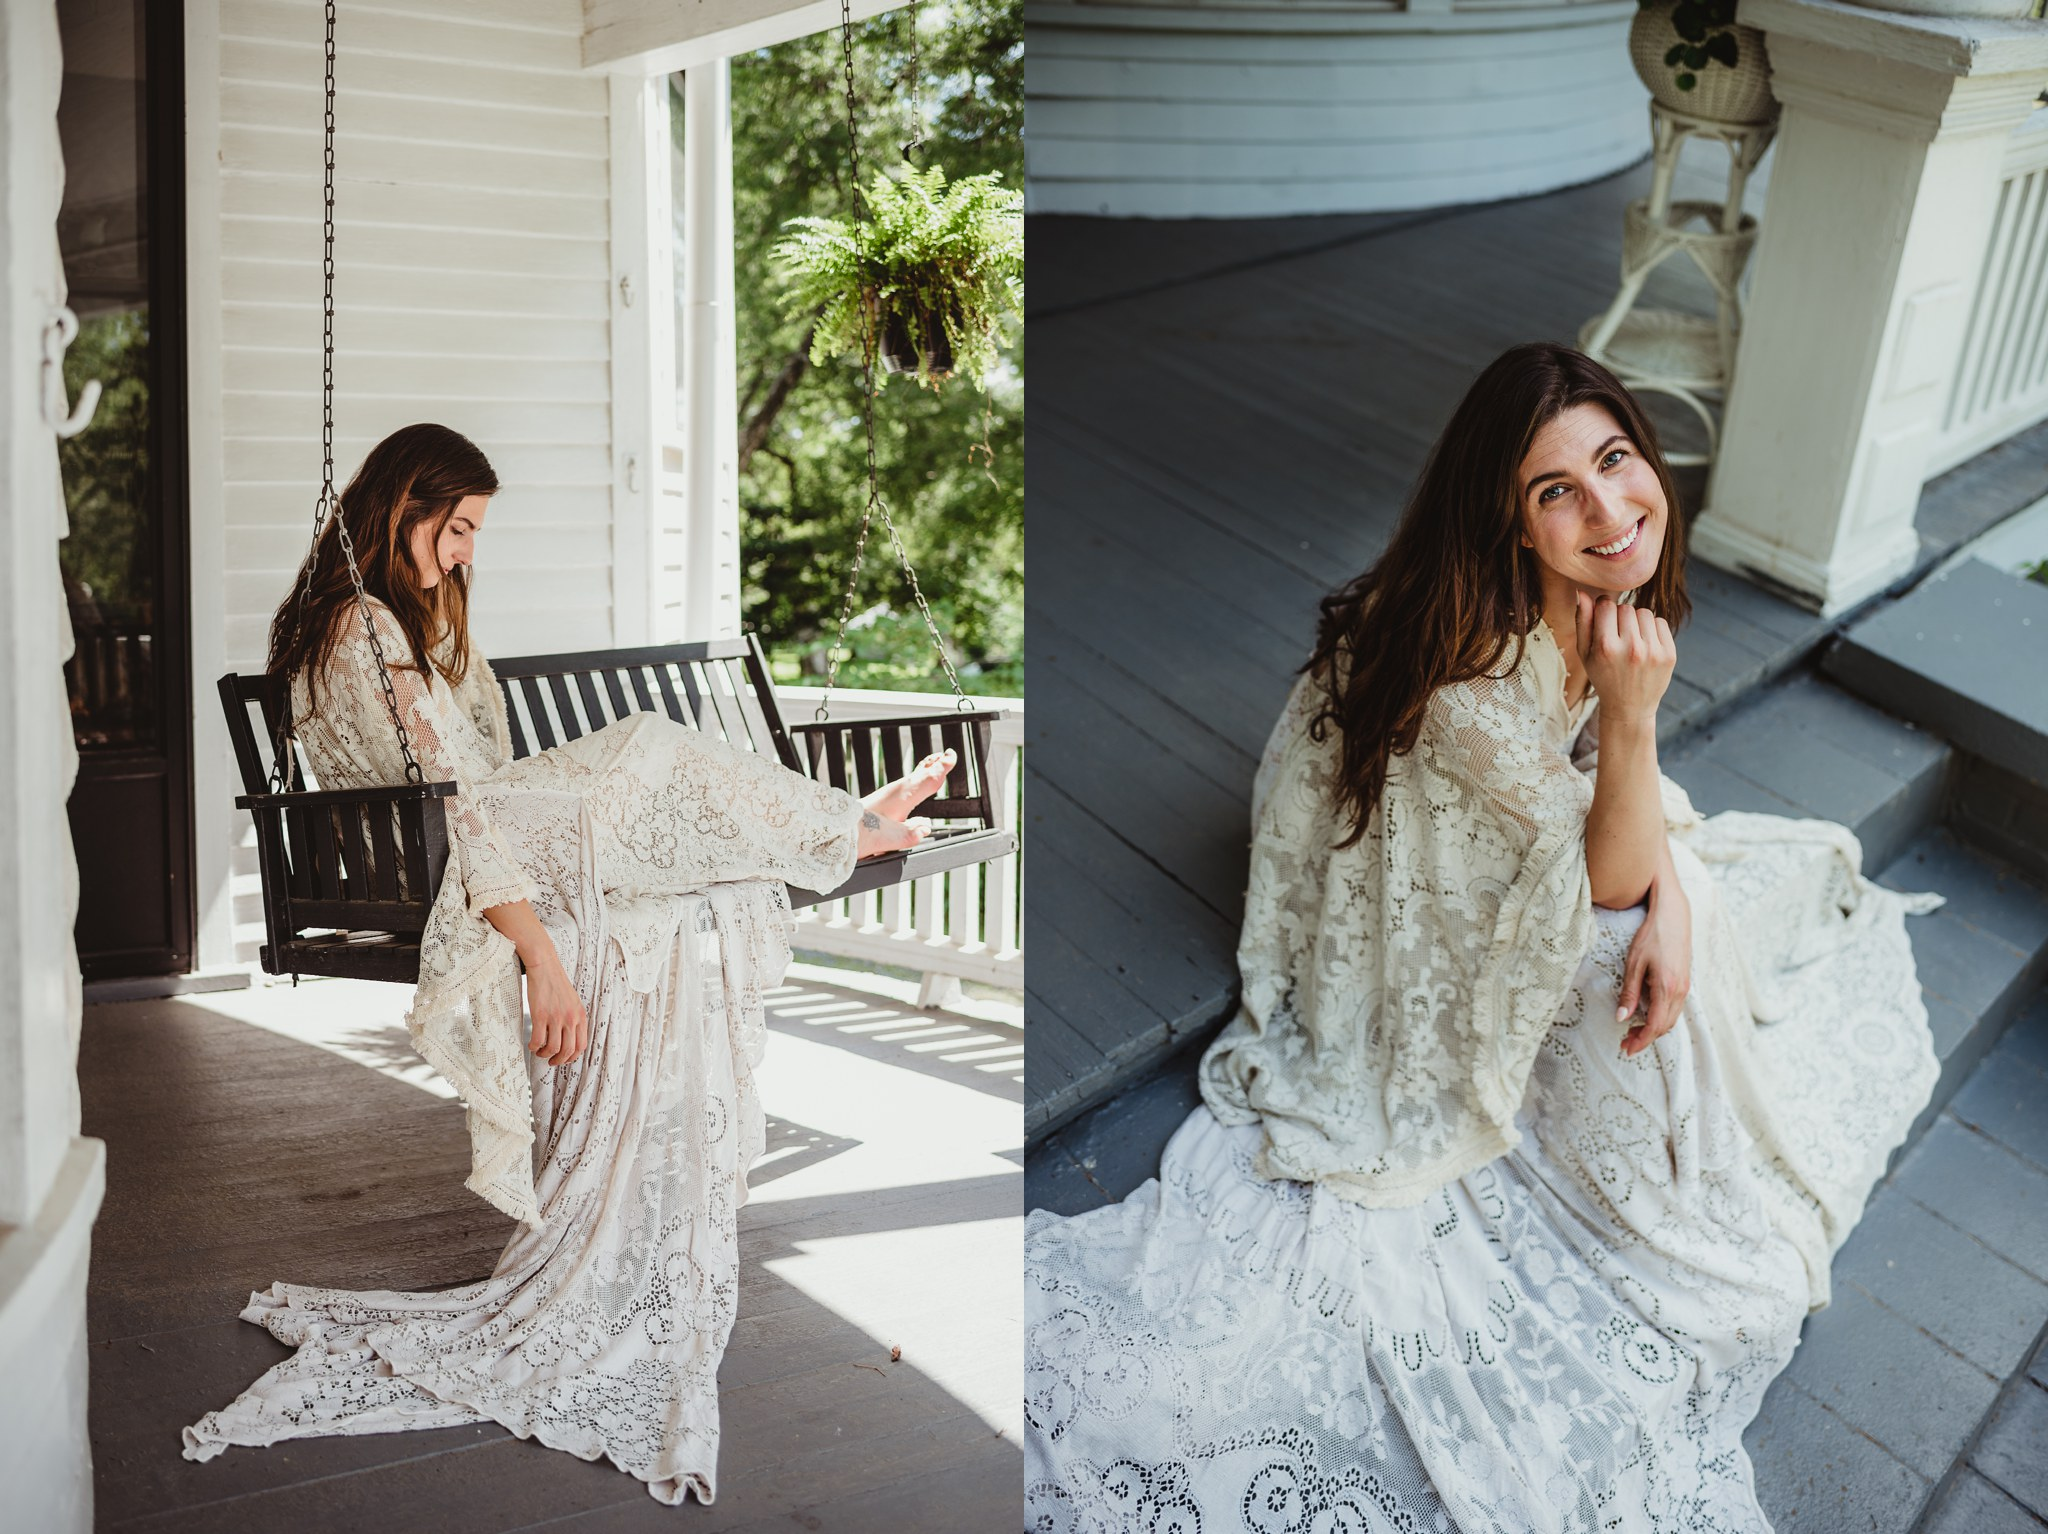 Pictures of a model in a styled shoot wearing a Reclamation boho vintage lace dress at the Mason Street Manor, available for rent in Rolesville North Carolina by Rose Trail Images.